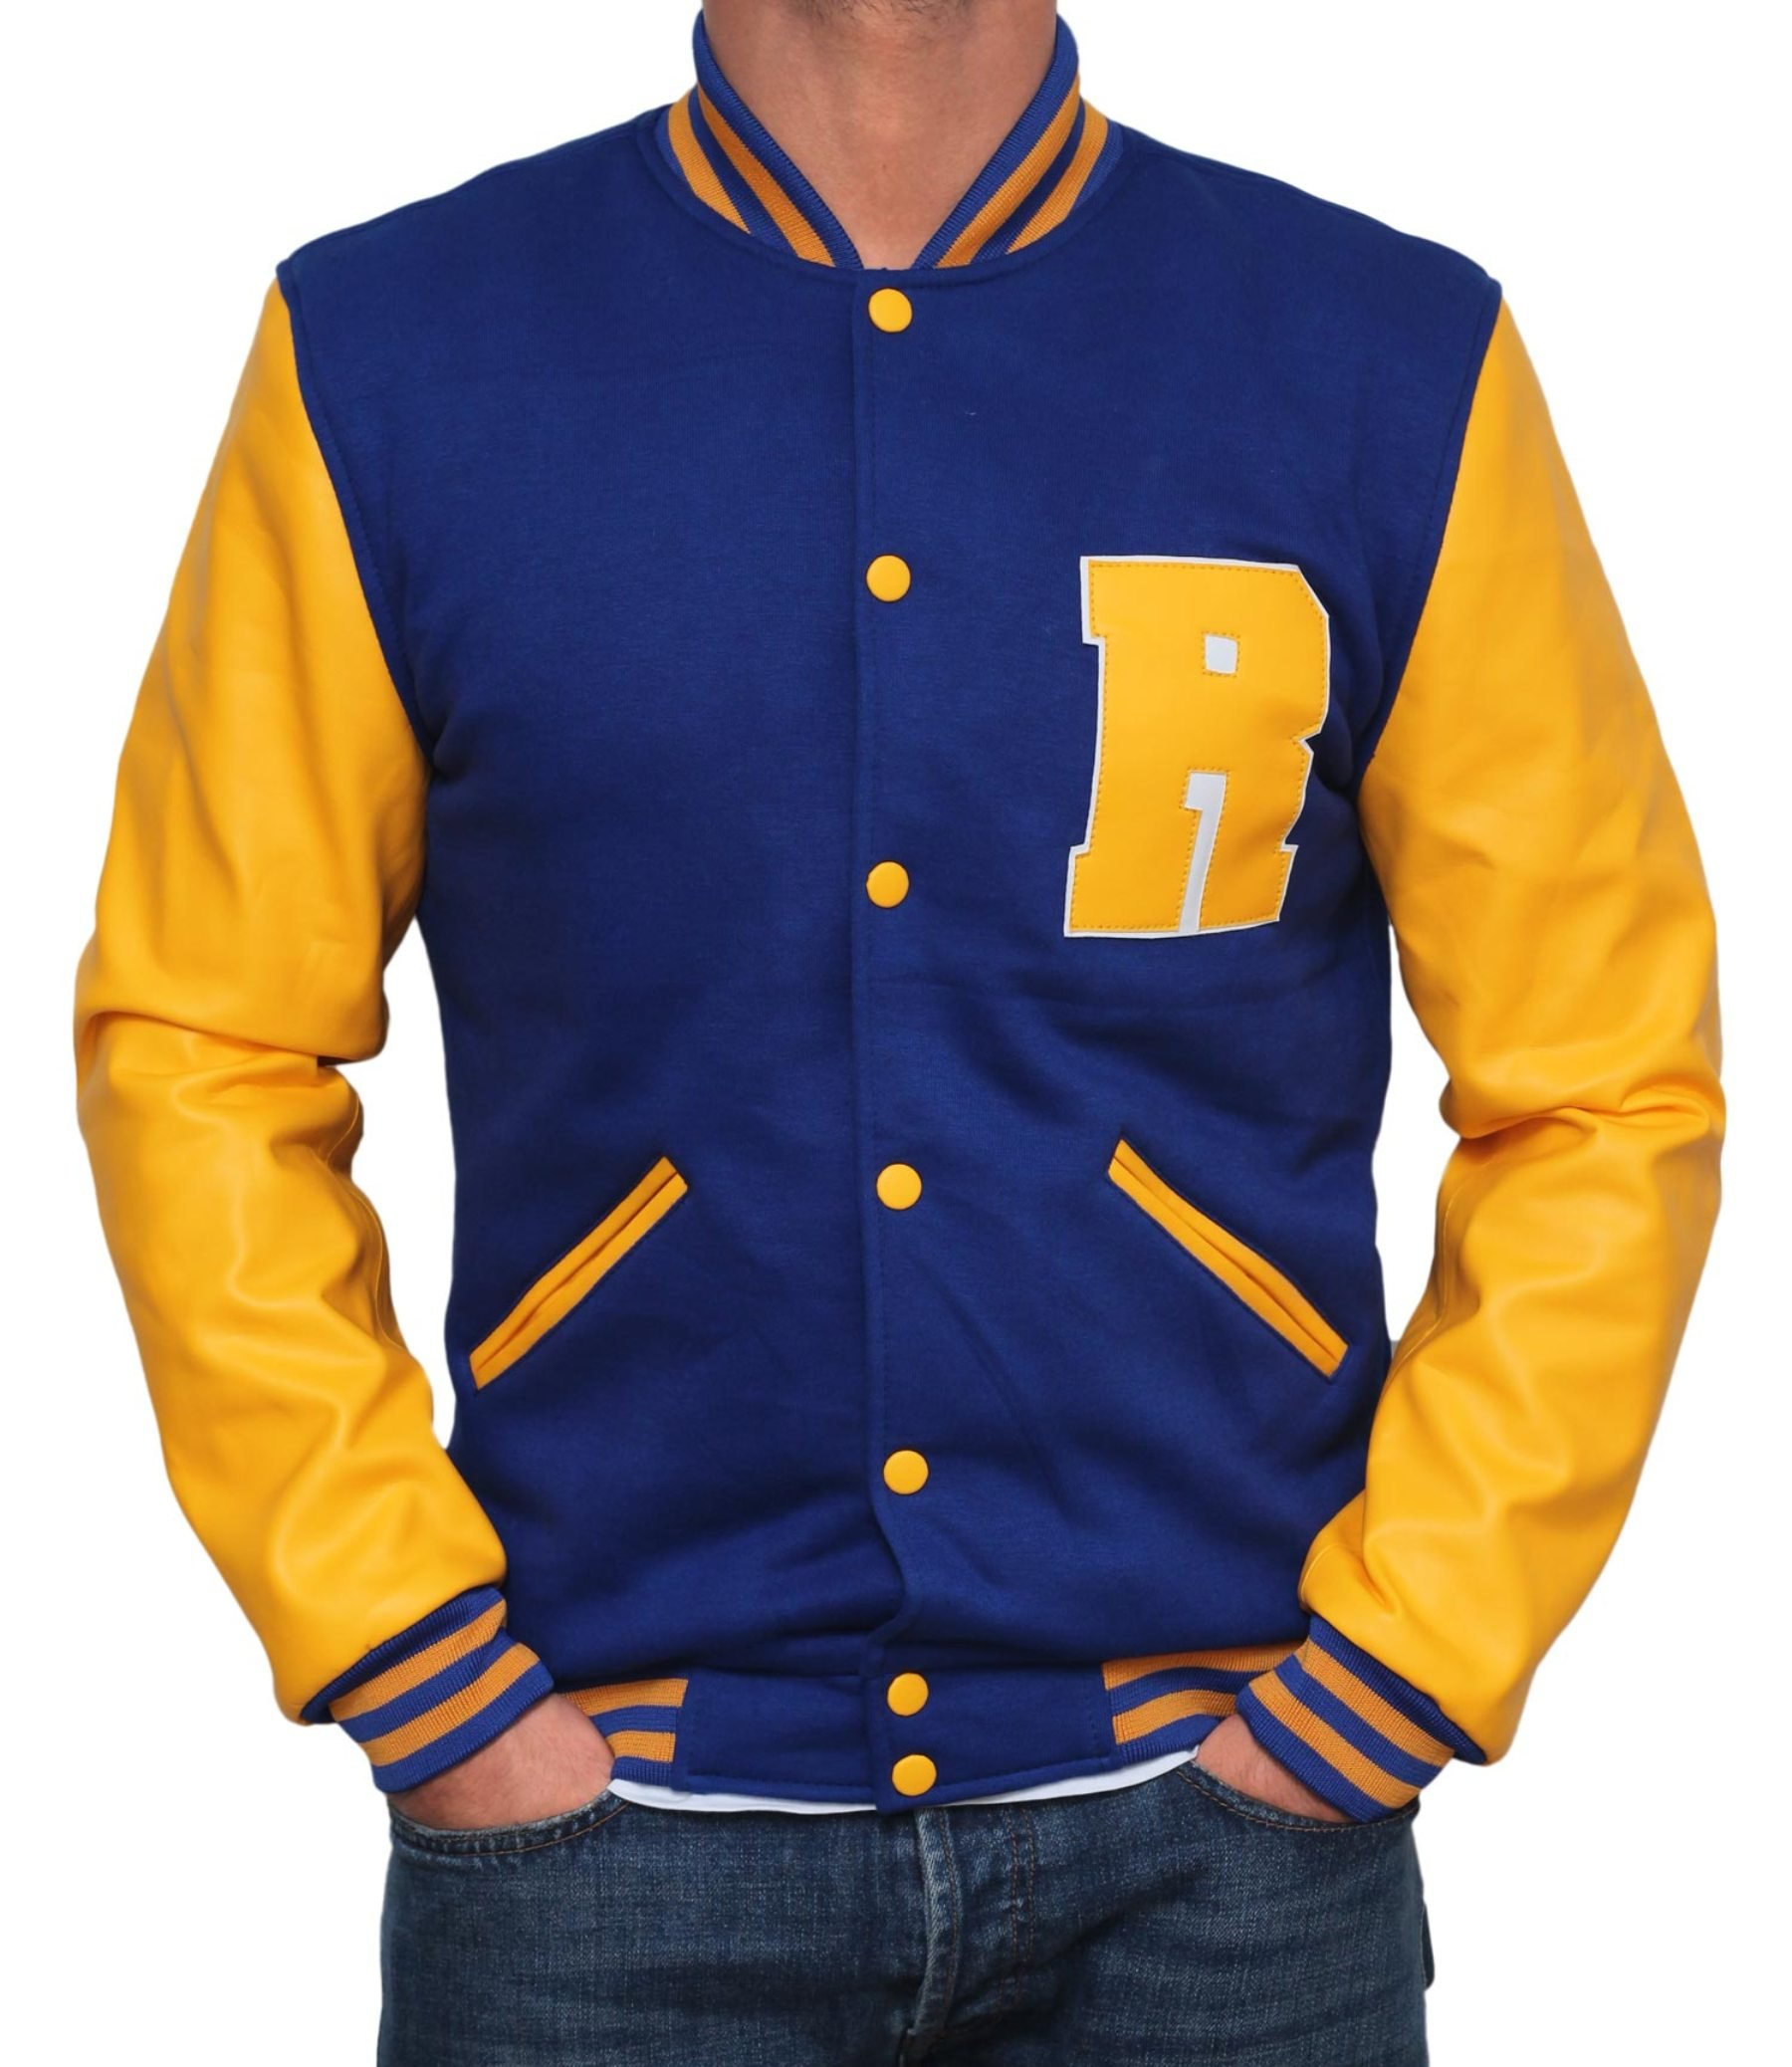 Decrum Men Riverdale KJ APA Archie Leather Jacket - Blue Varsity Jacket PU | XL by Decrum